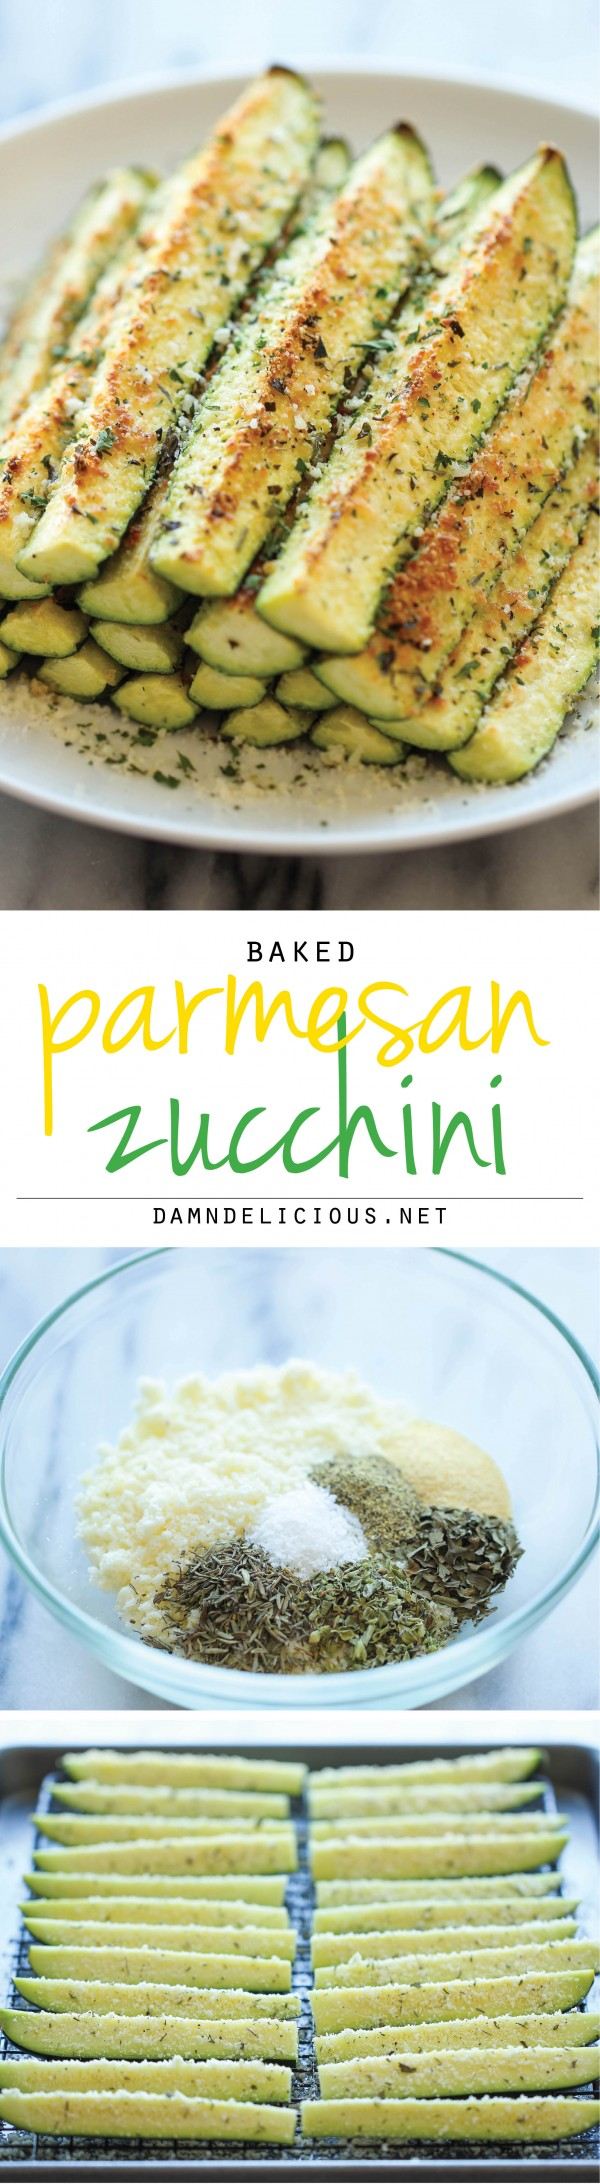 Get the recipe Baked Parmesan Zucchini @recipes_to_go